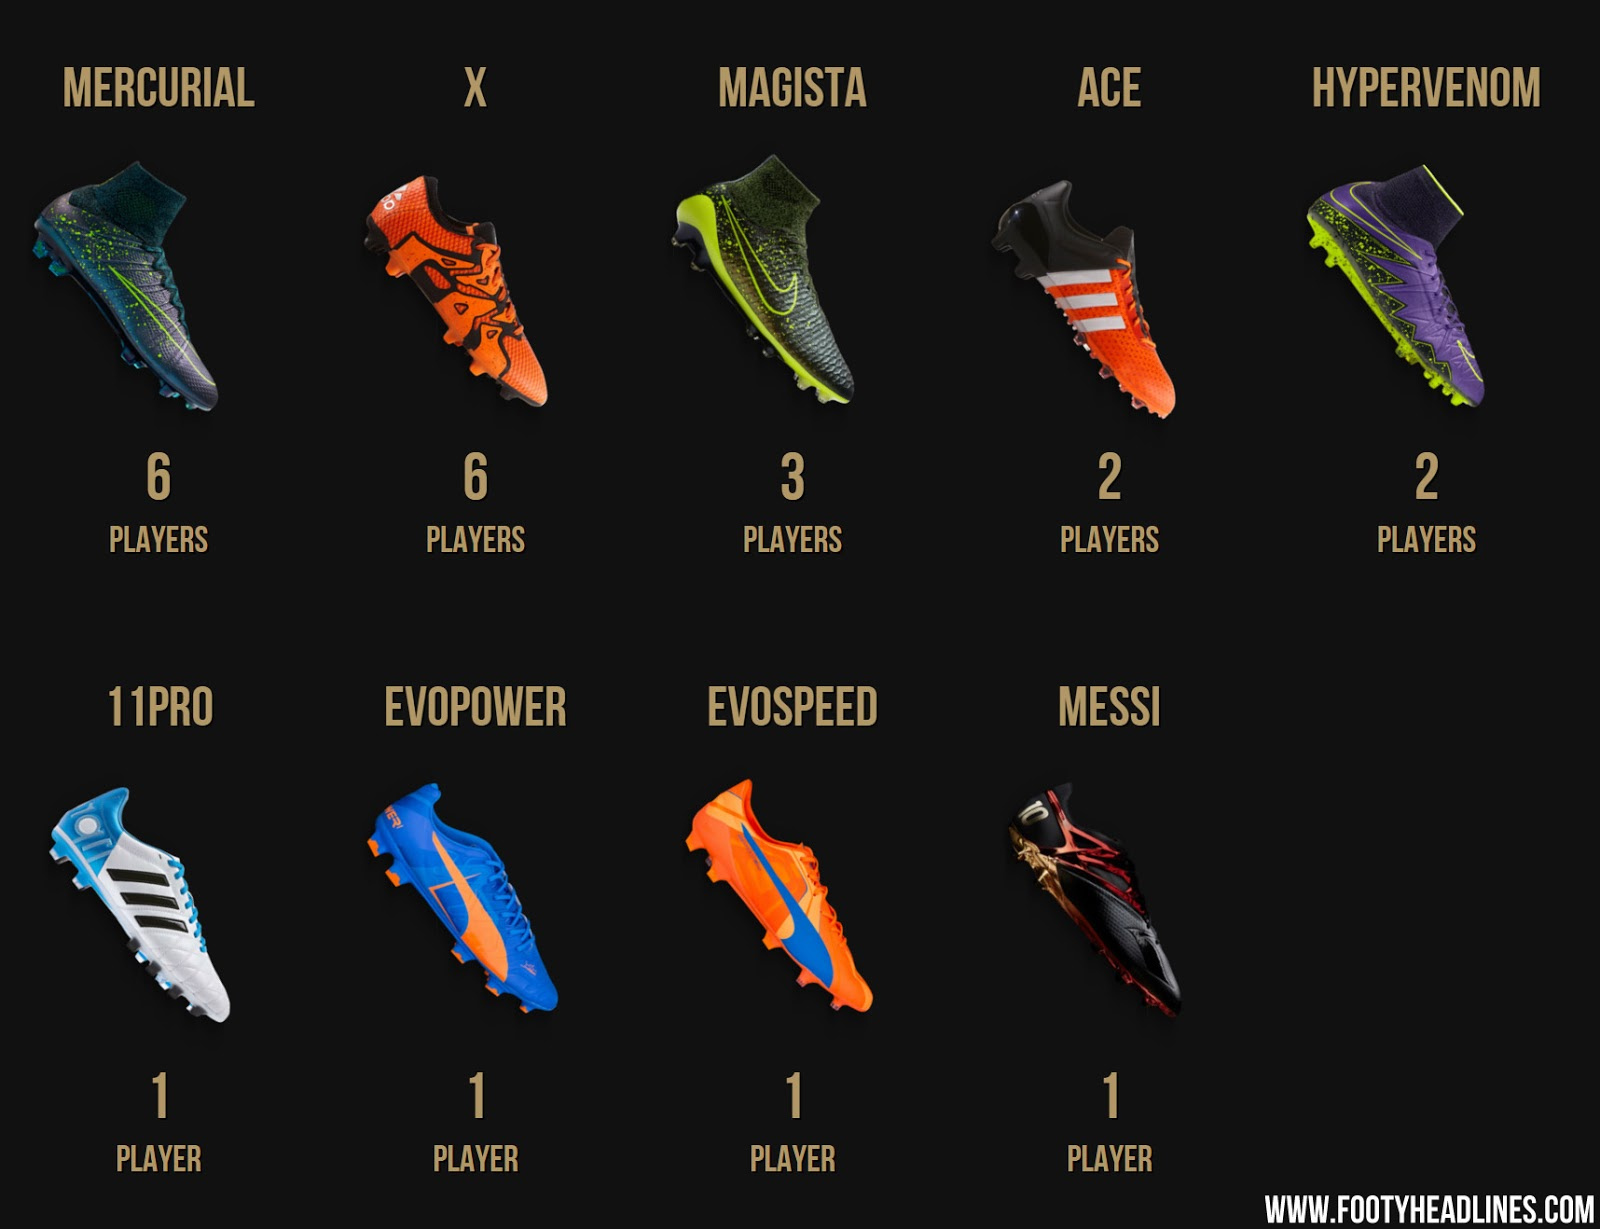 What Shoes Does Messi Wear